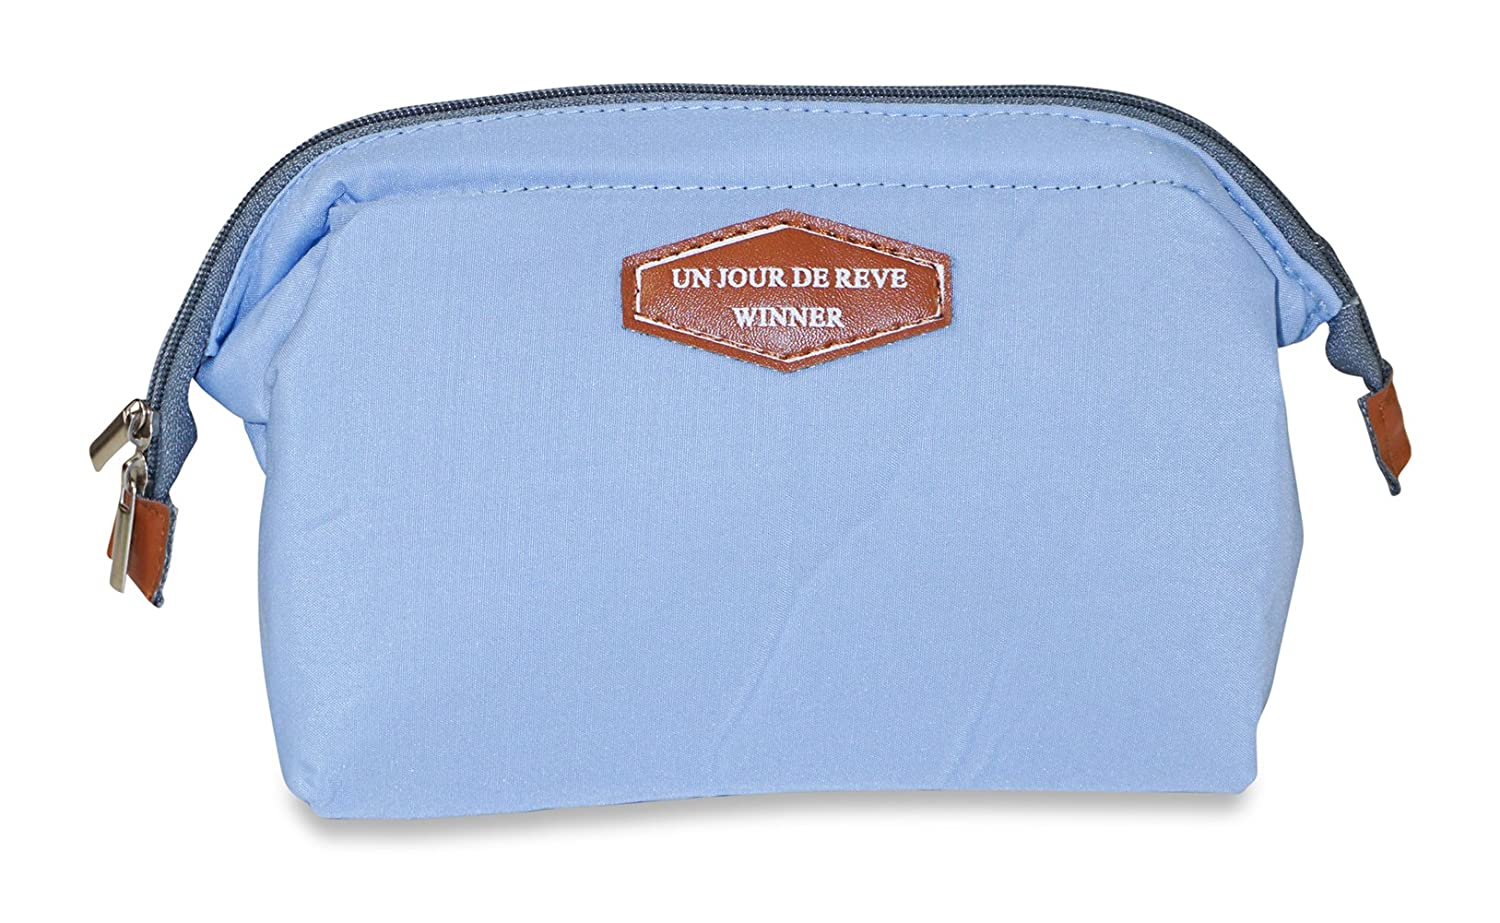 springwind Toiletry Travel Make Up Cosmetic Bagポーチクラッチハンドバッグ手ごろ One-Size ブルー  ライトブルー B00X7DCQ0O